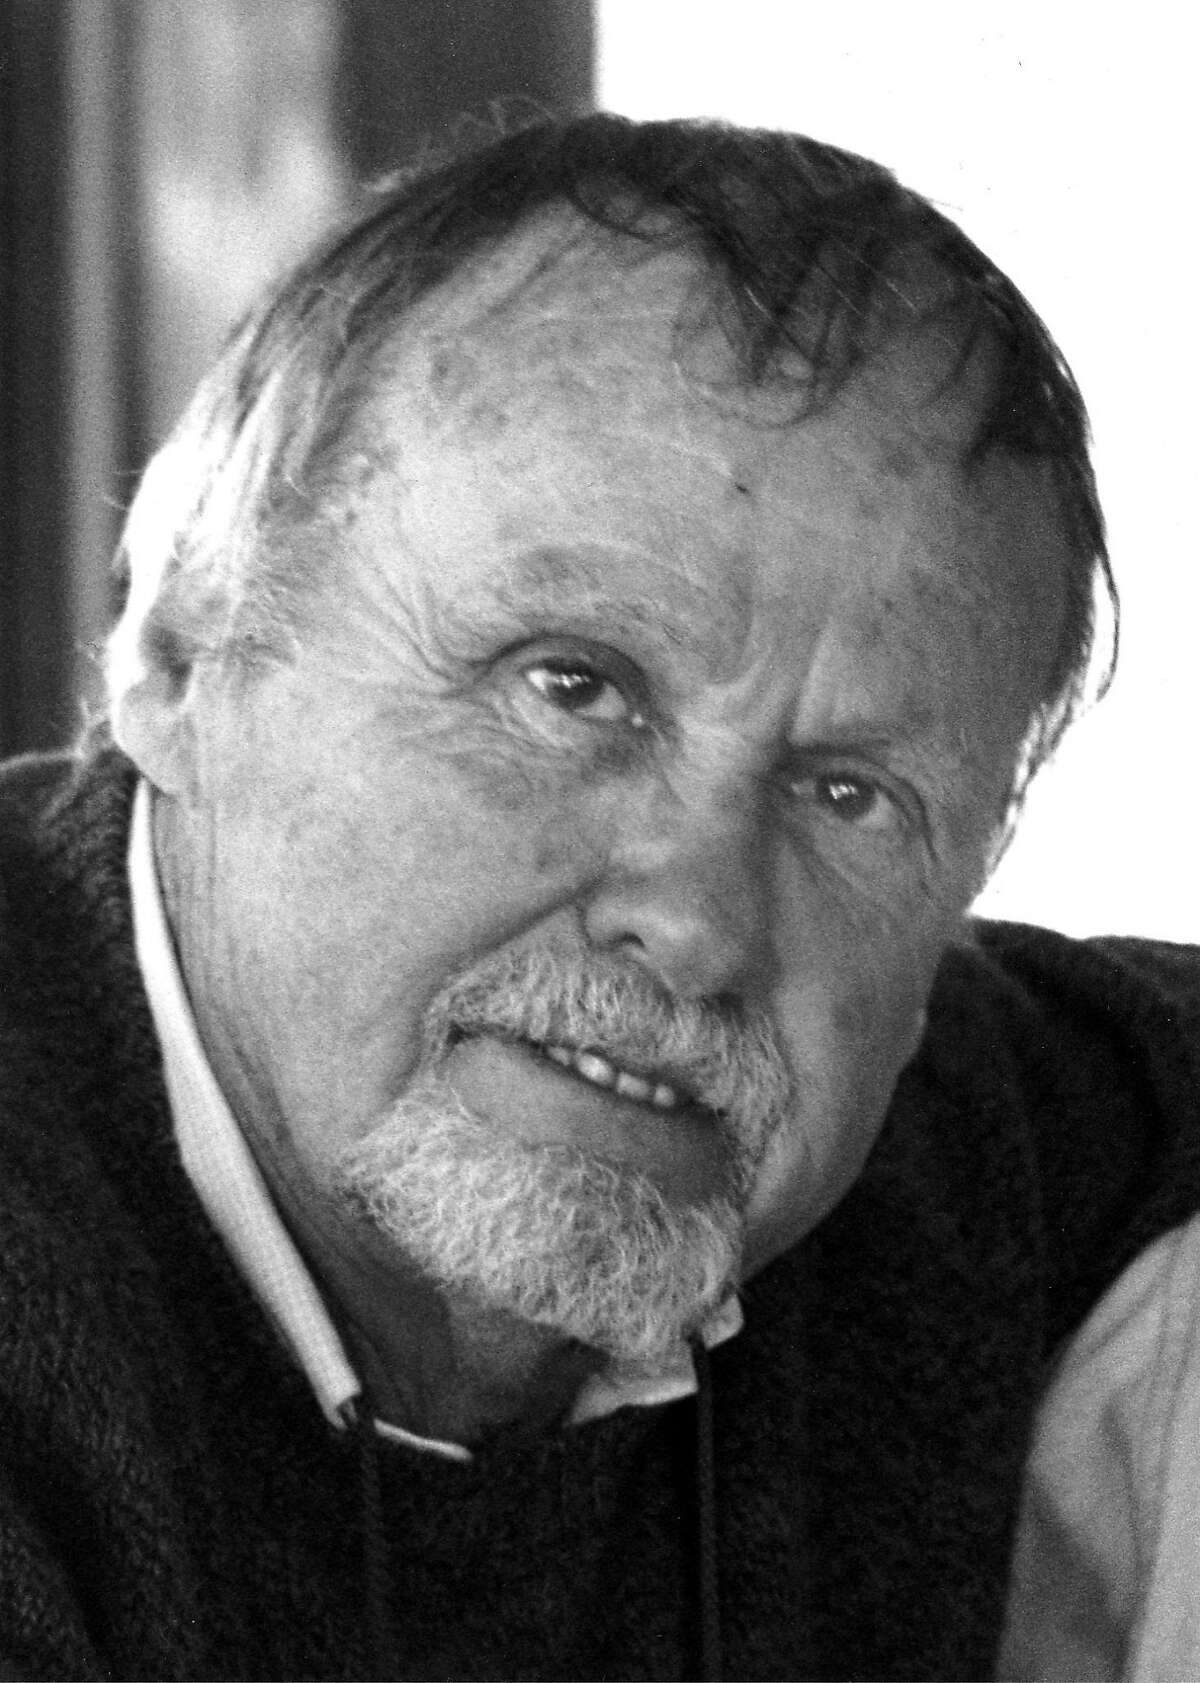 Oakley Hall, a giant of California literature, died Monday after a battle with cancer and kidney disease. Photo Courtesy of Oakley Hall